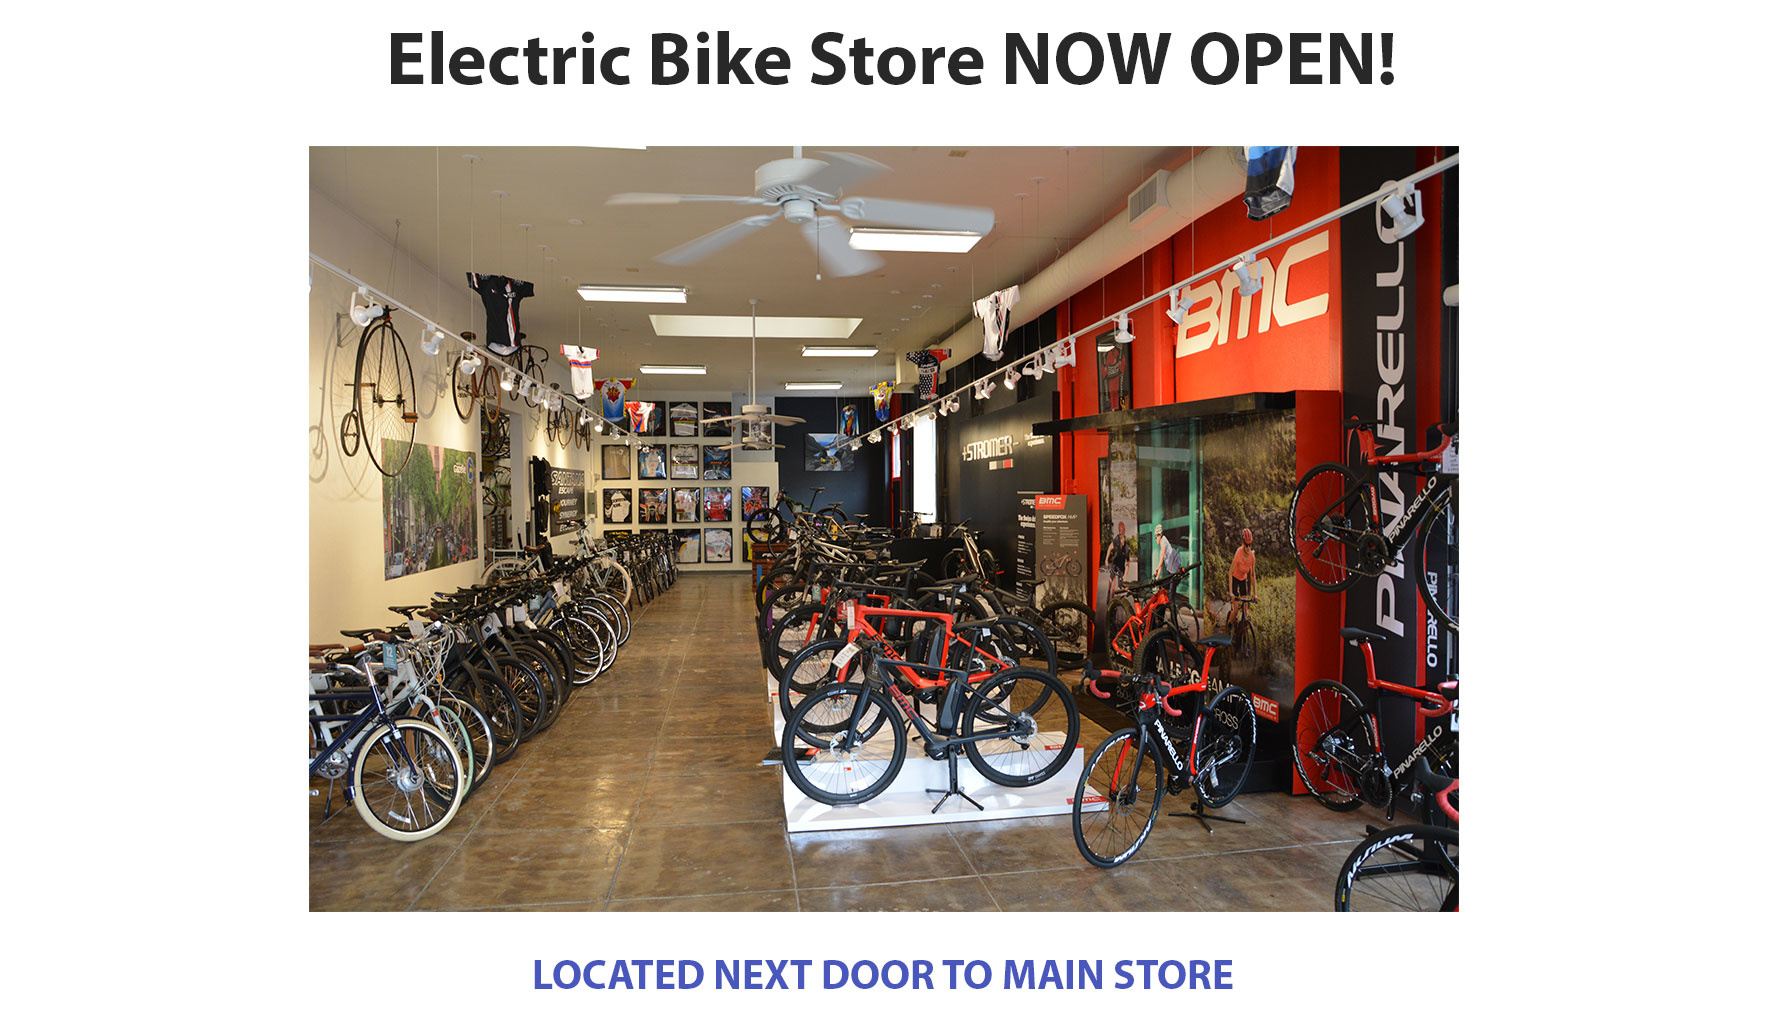 EBike Store Now Open